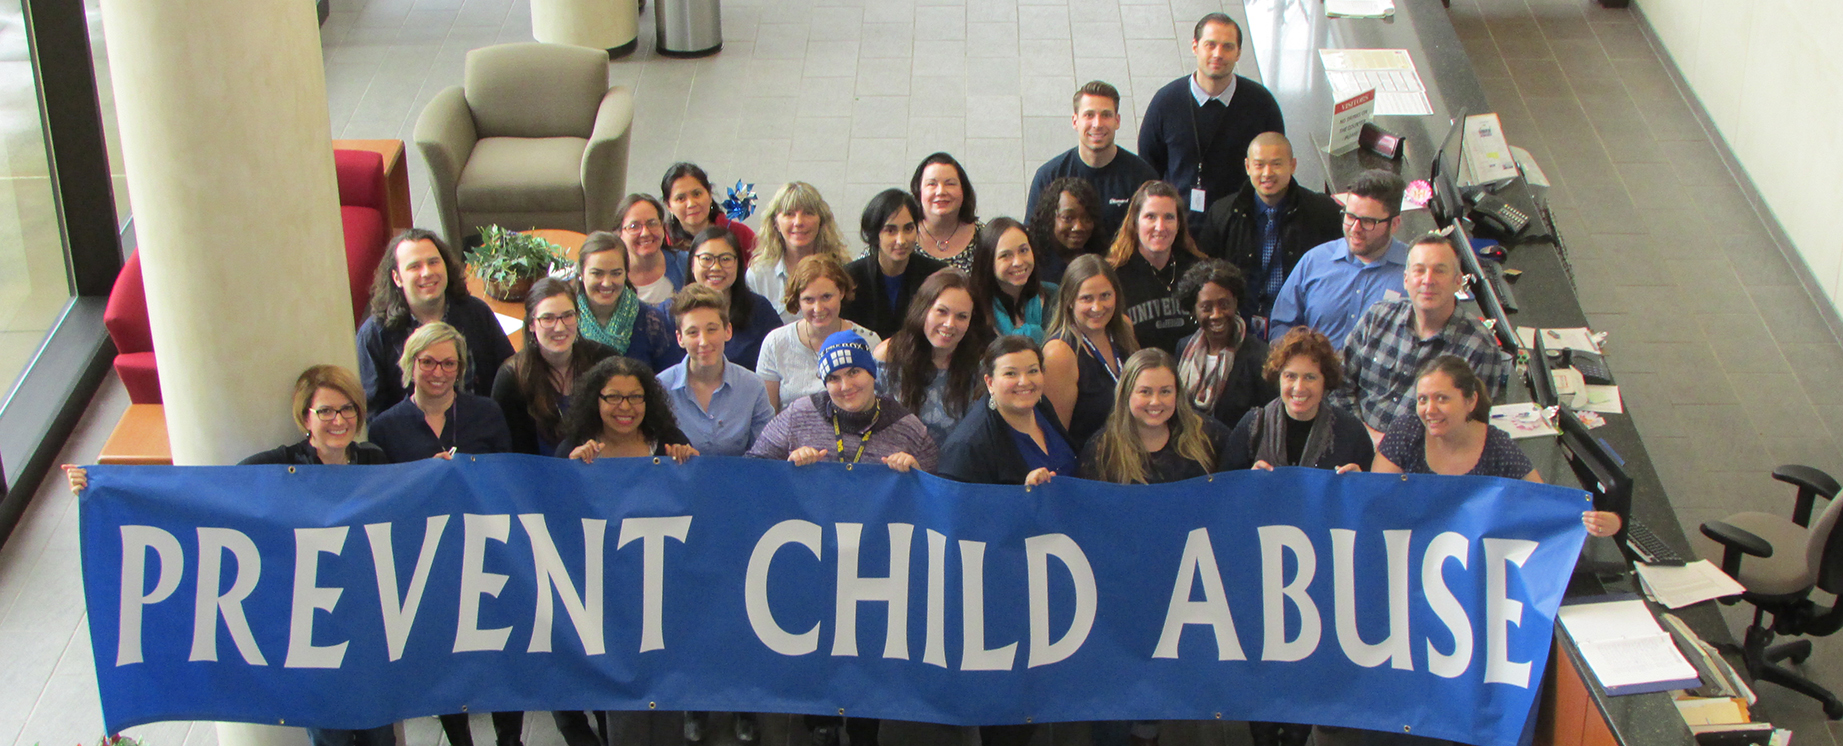 CDSS Employees holding up a Child Abuse Prevention Sign